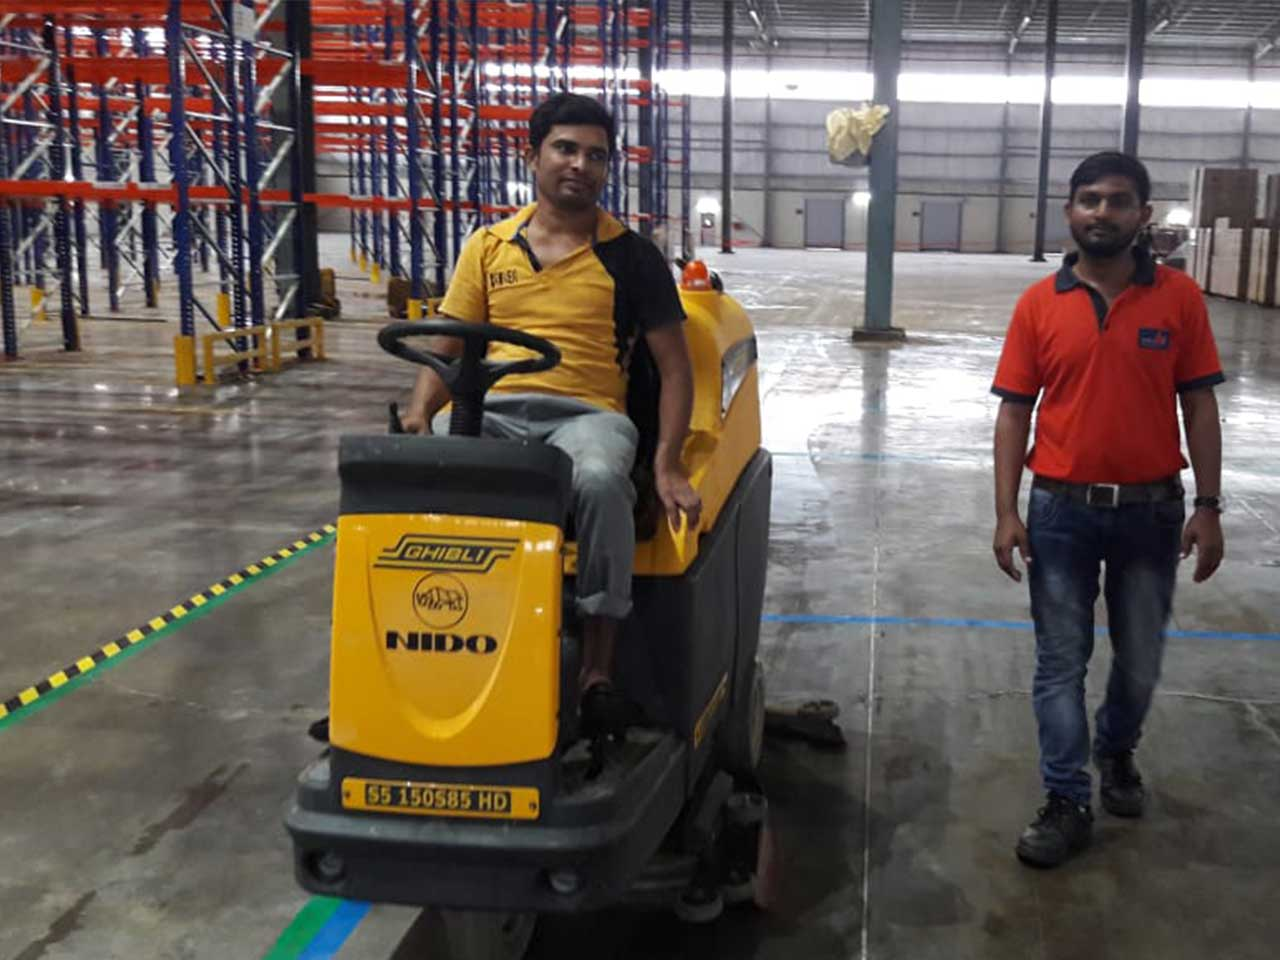 Ride On - Battery Sweeper with Collector- Industrial Cleaning at Warehouse